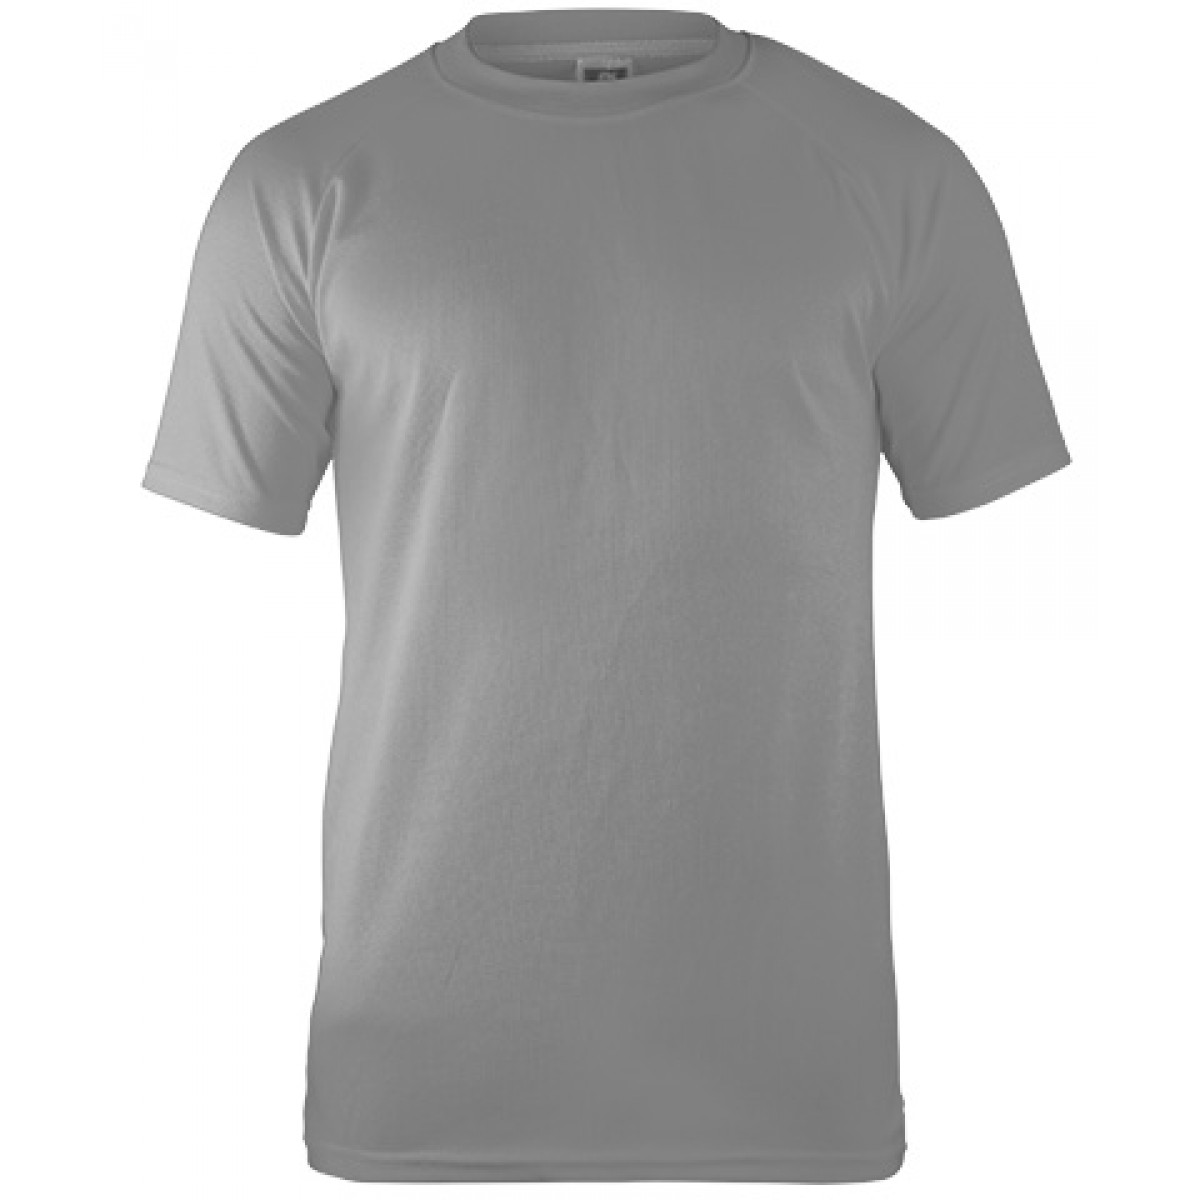 Performance T-shirt-Gray -M